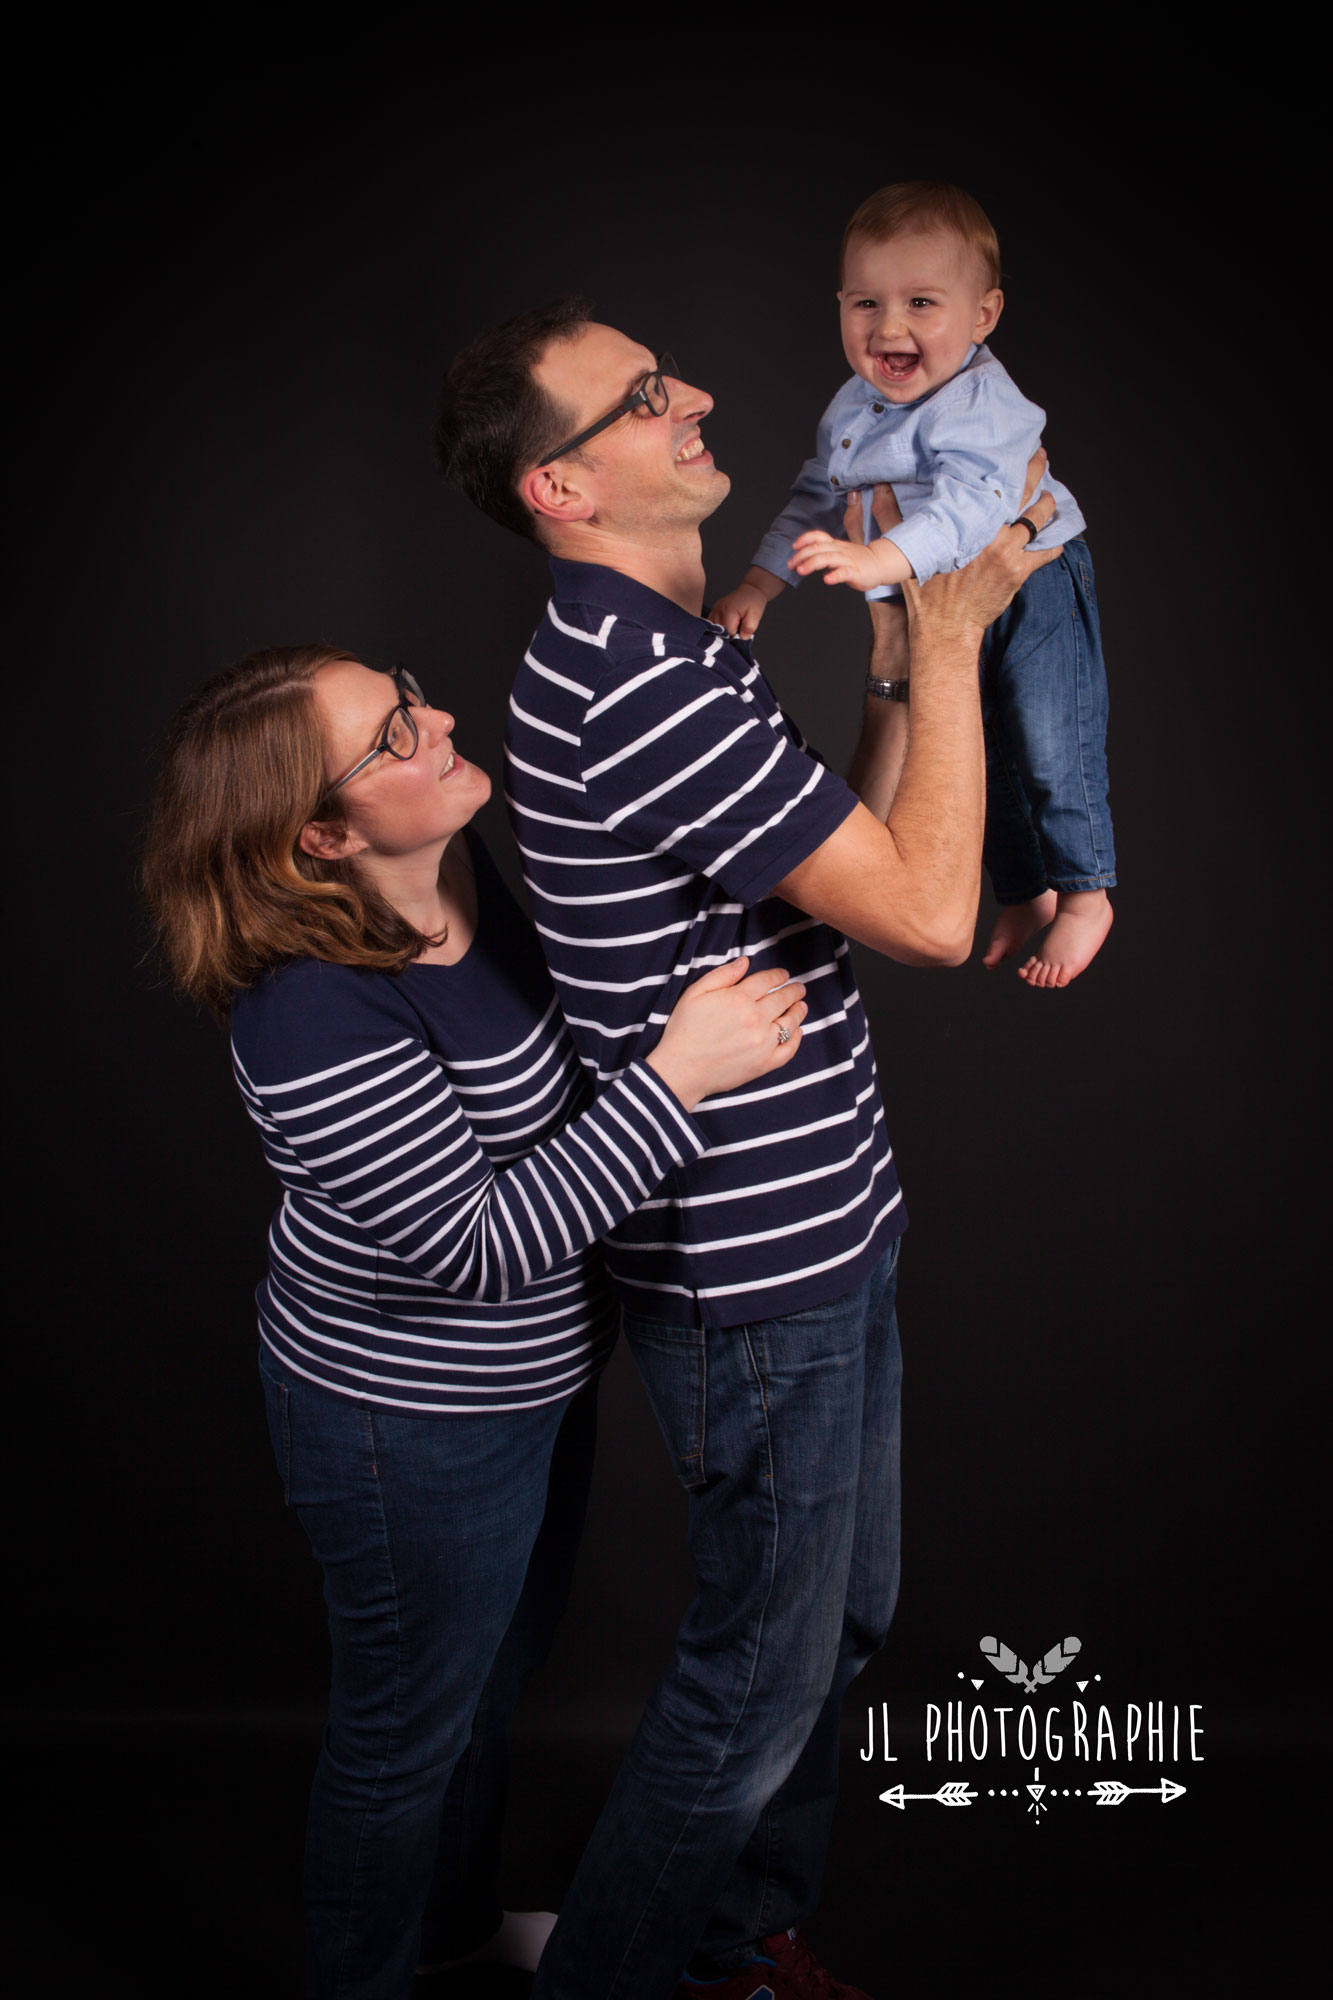 Photographie de deux parents portant leur enfants